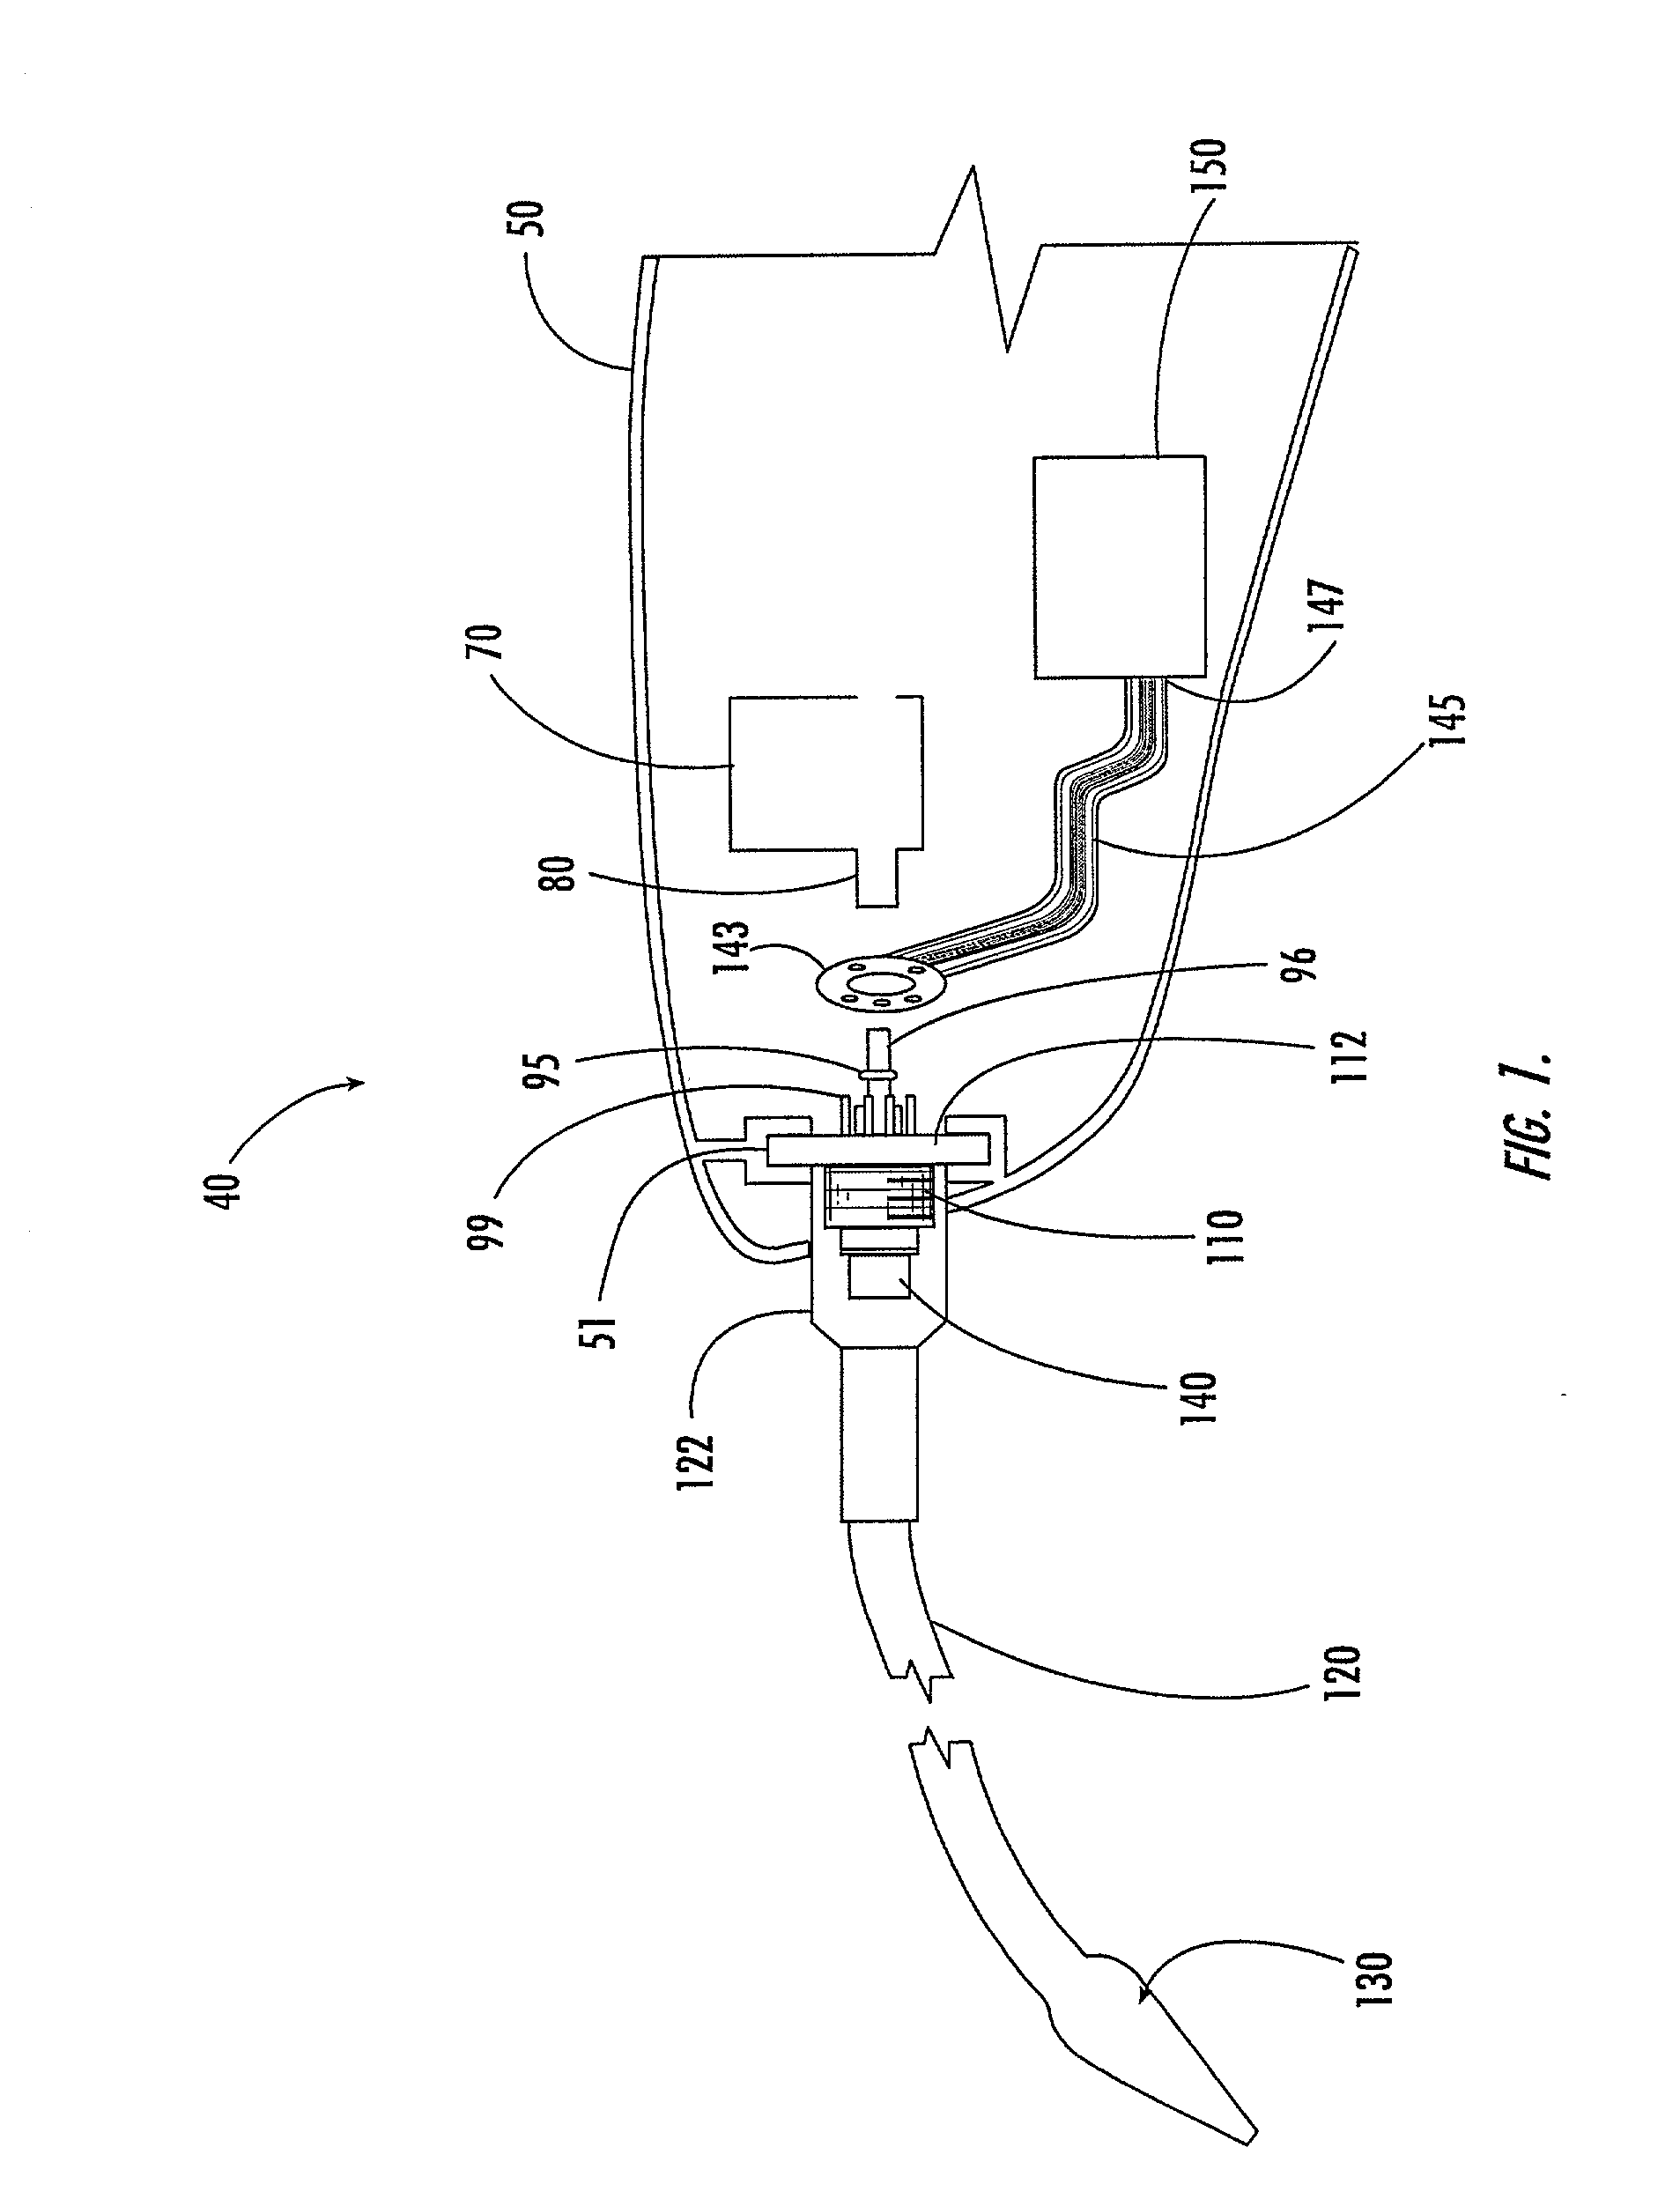 Patente US20030159495 - High flow rate sample flow path